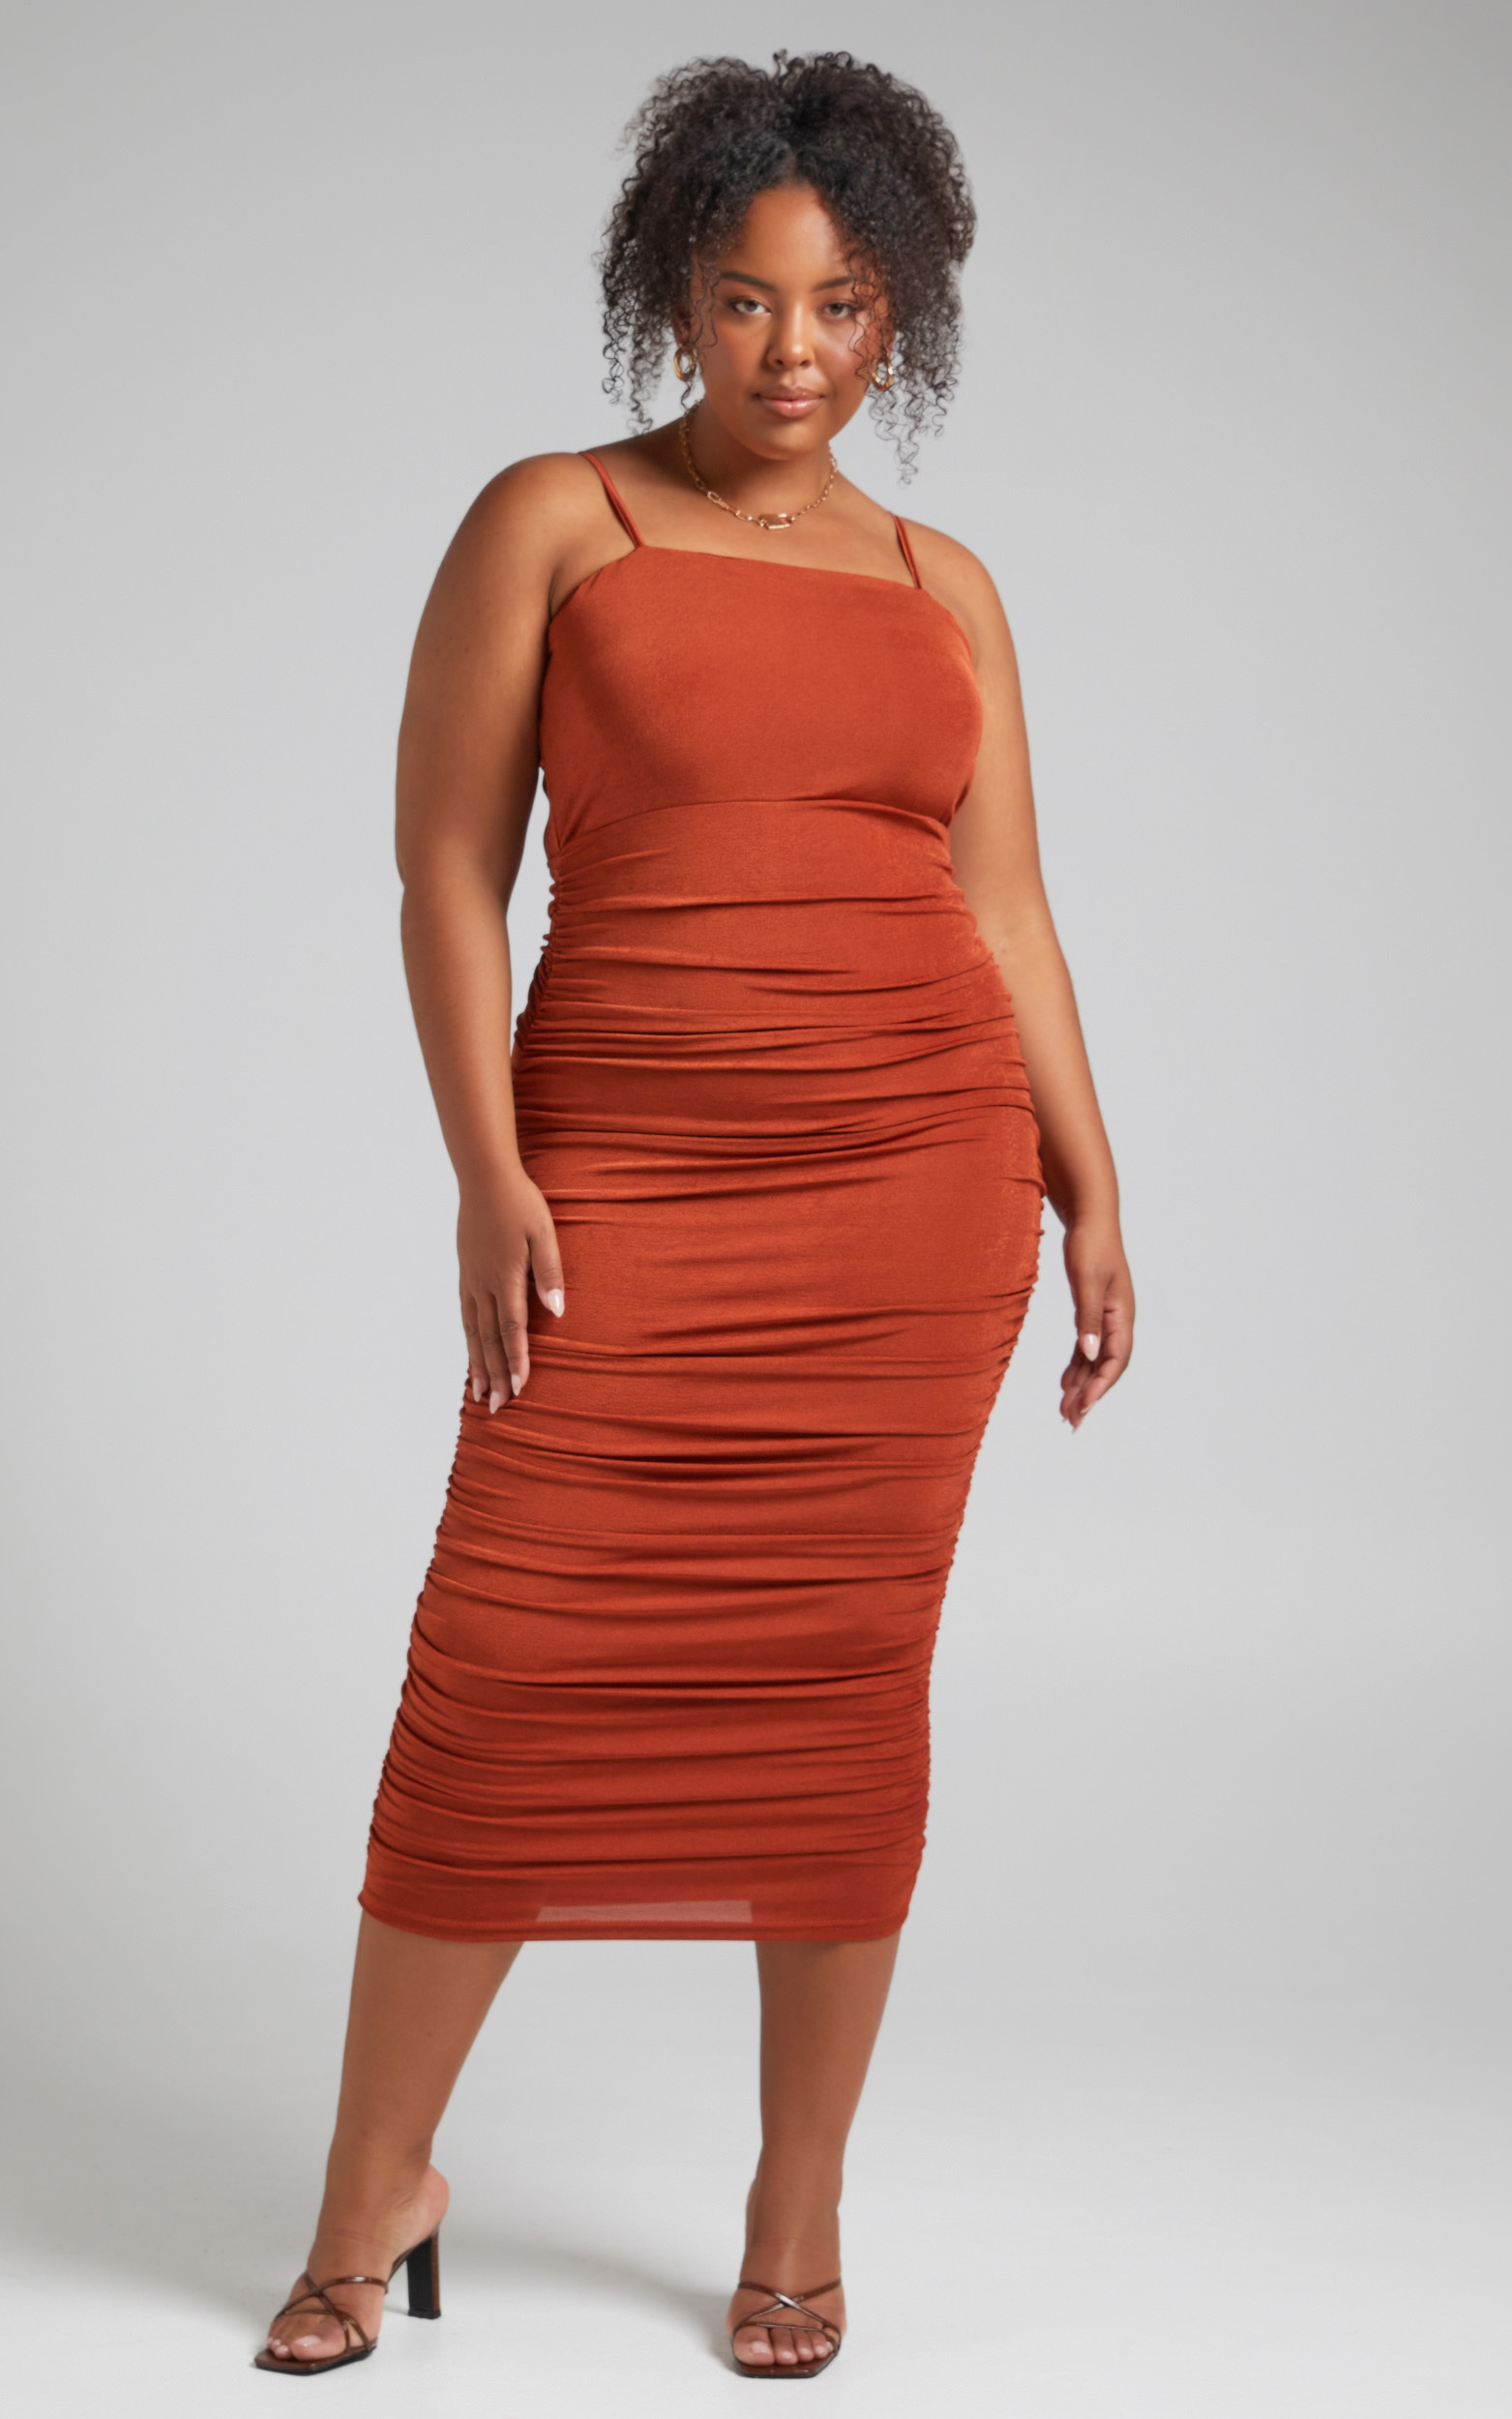 Commit To Me Bodycon Midi Dress in Rust - 04, BRN3, hi-res image number null